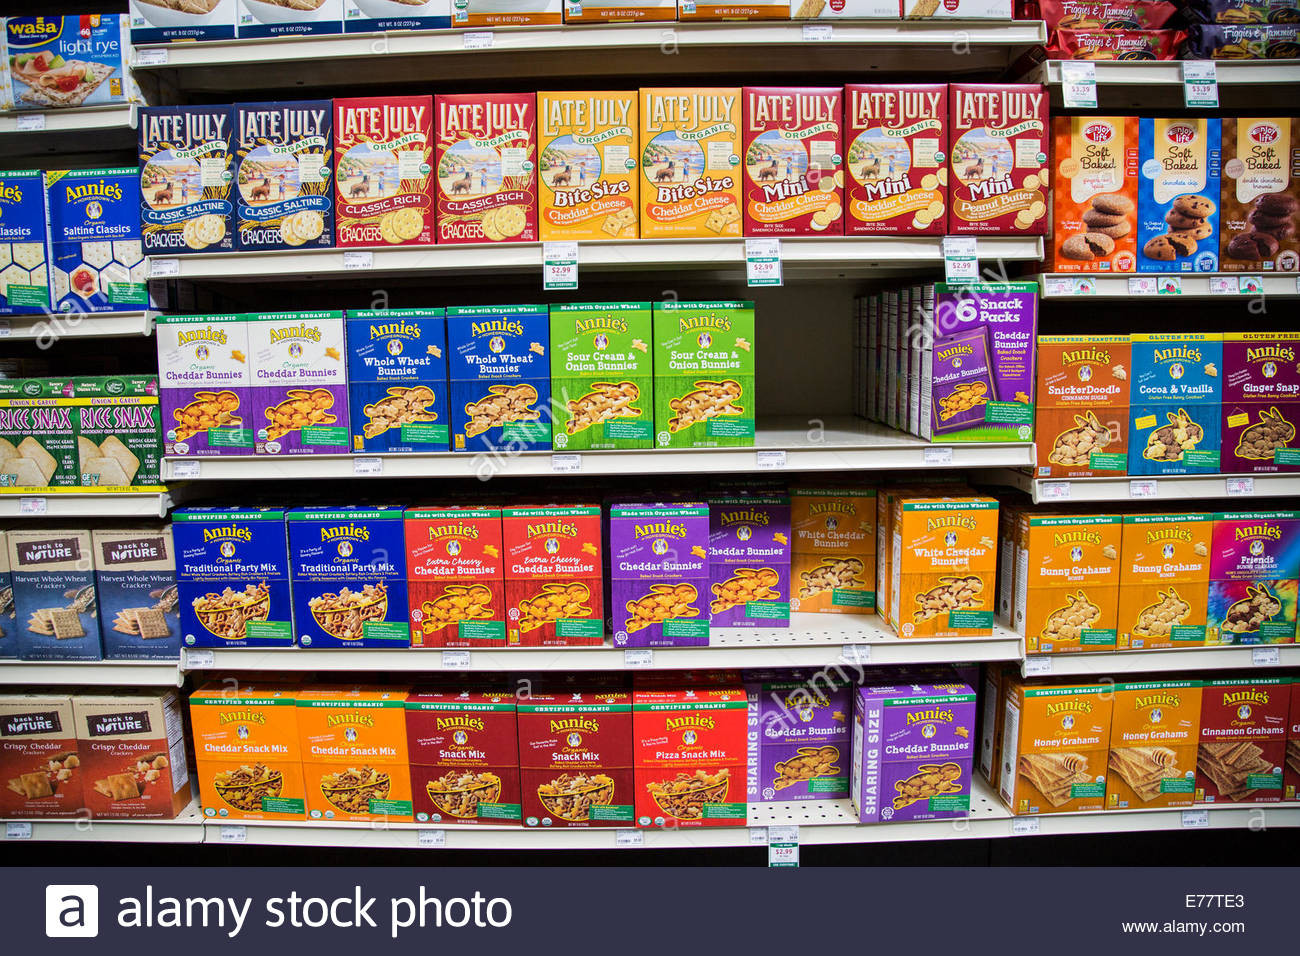 Healthy Snacks At Grocery Store  A natural foods grocery store aisle with shelves of